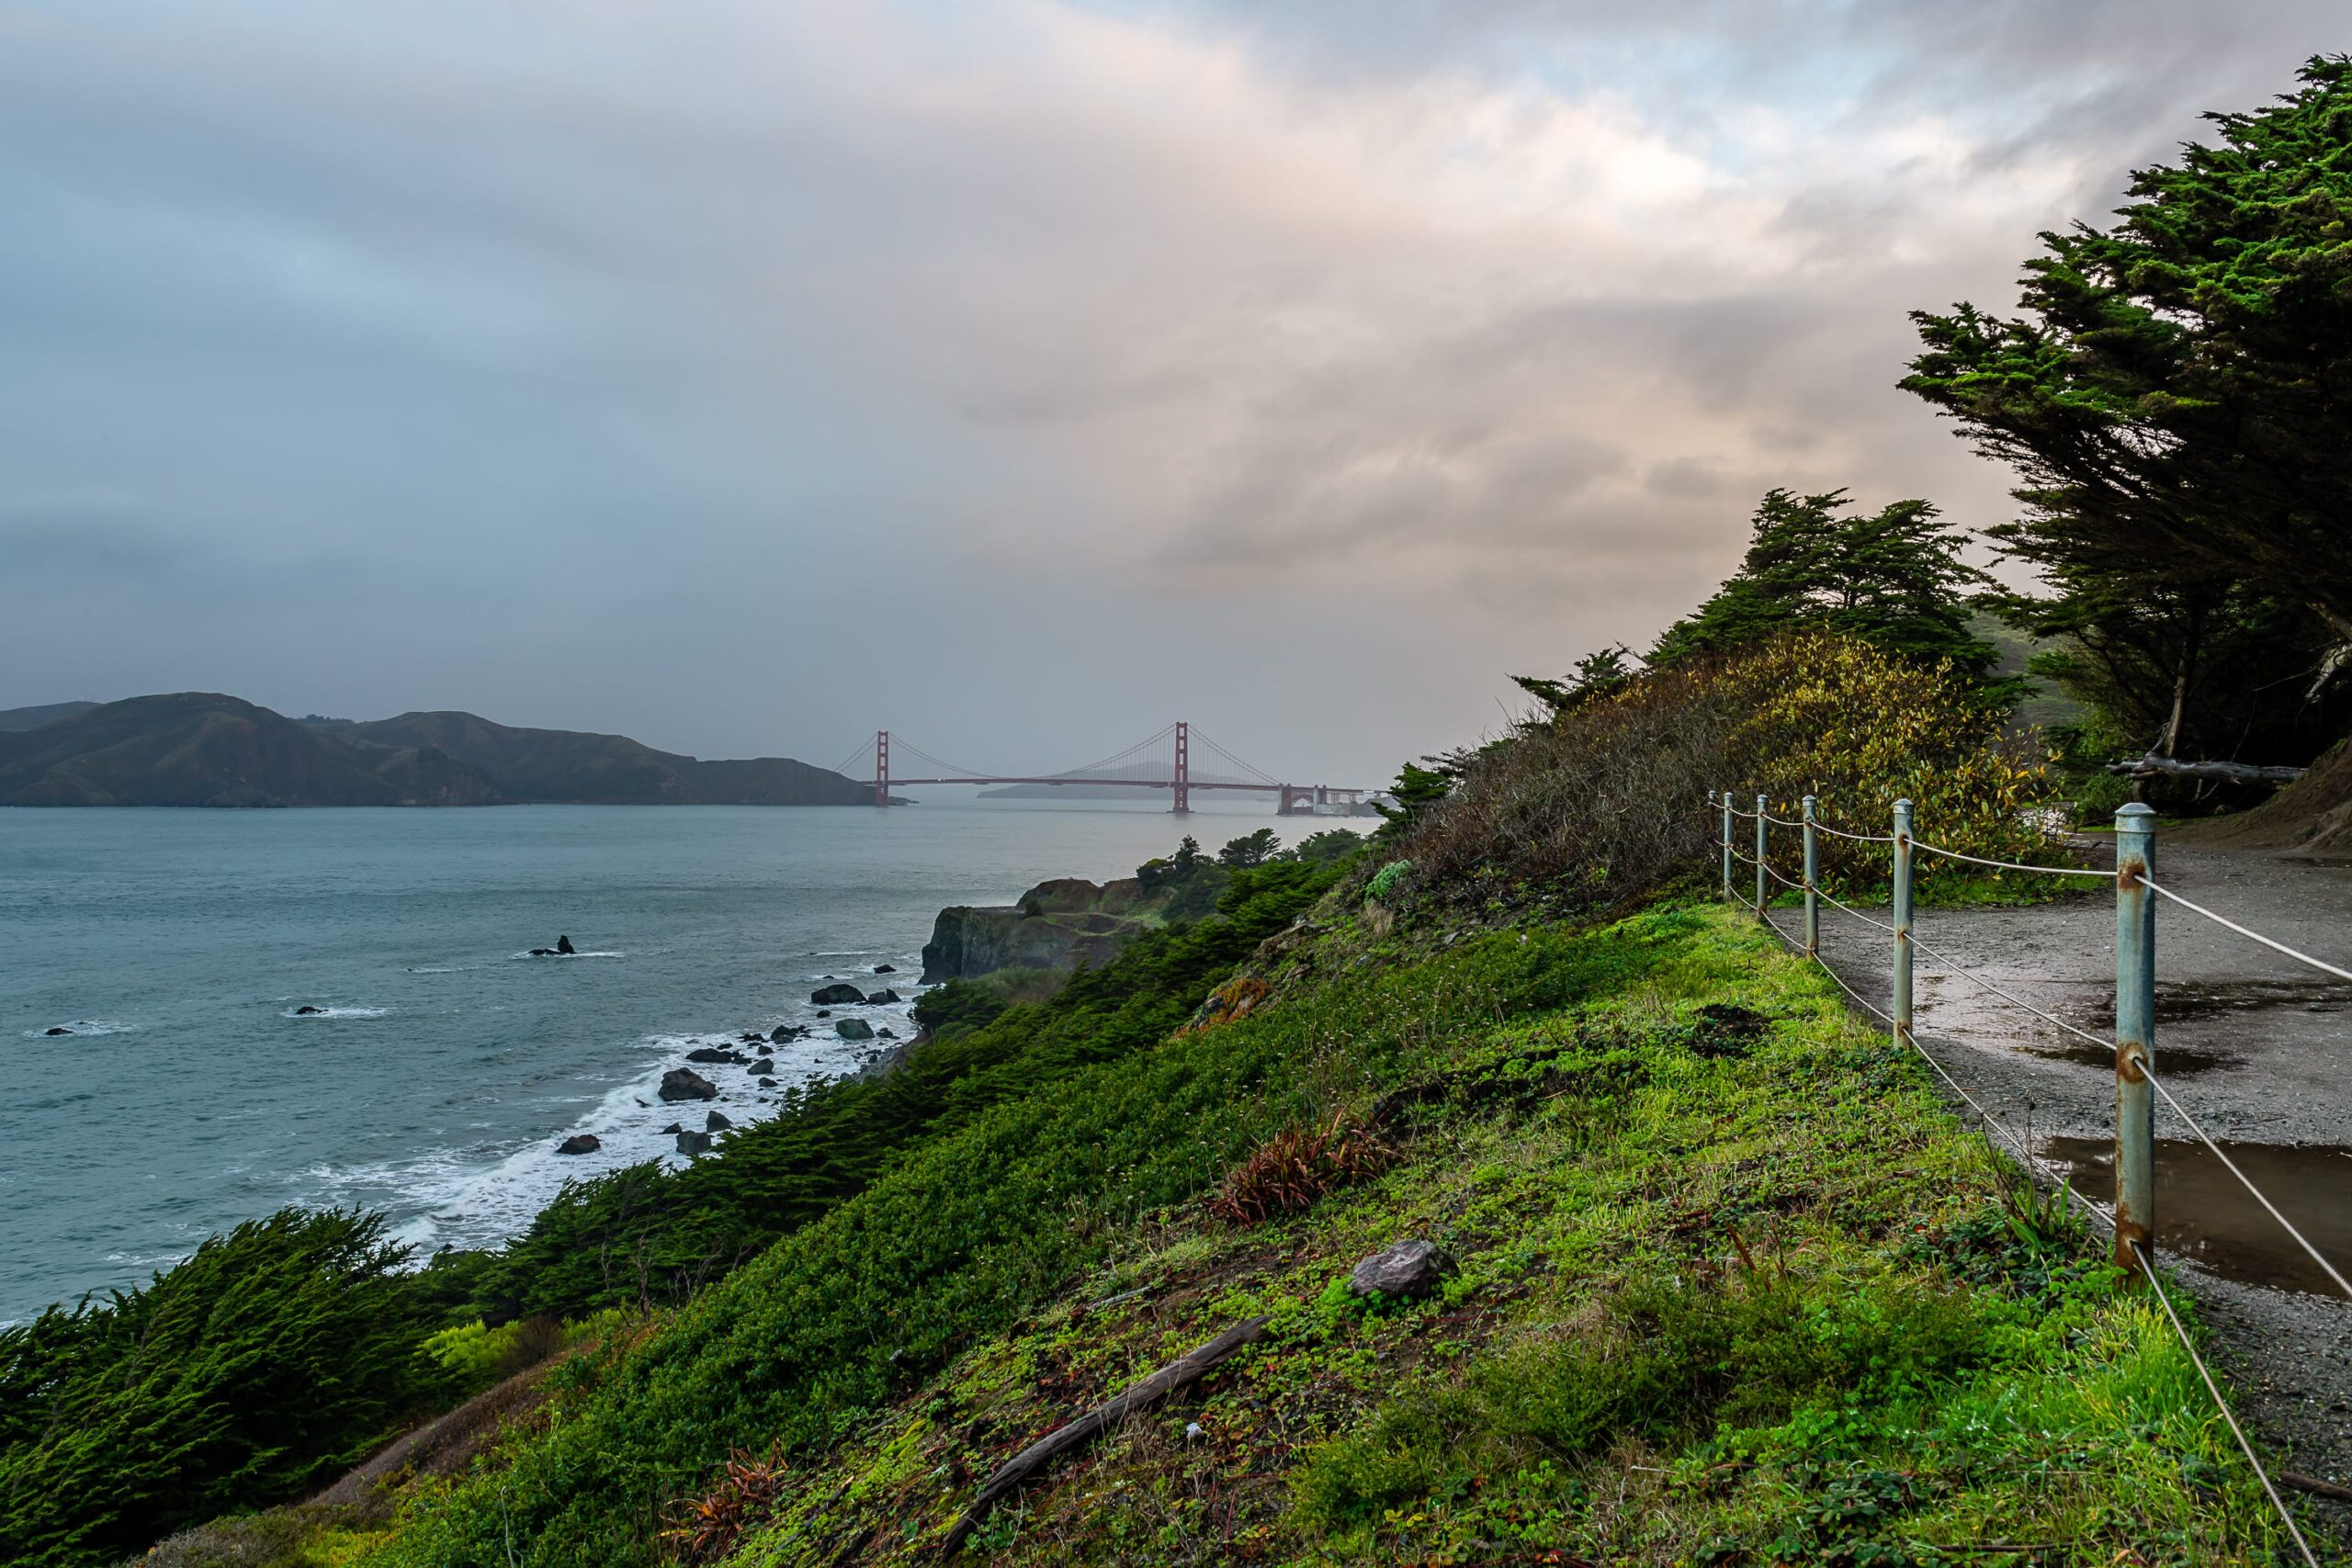 The Lands End Labyrinth and the Coastal Trail along the San Francisco coastline on a cloudy day